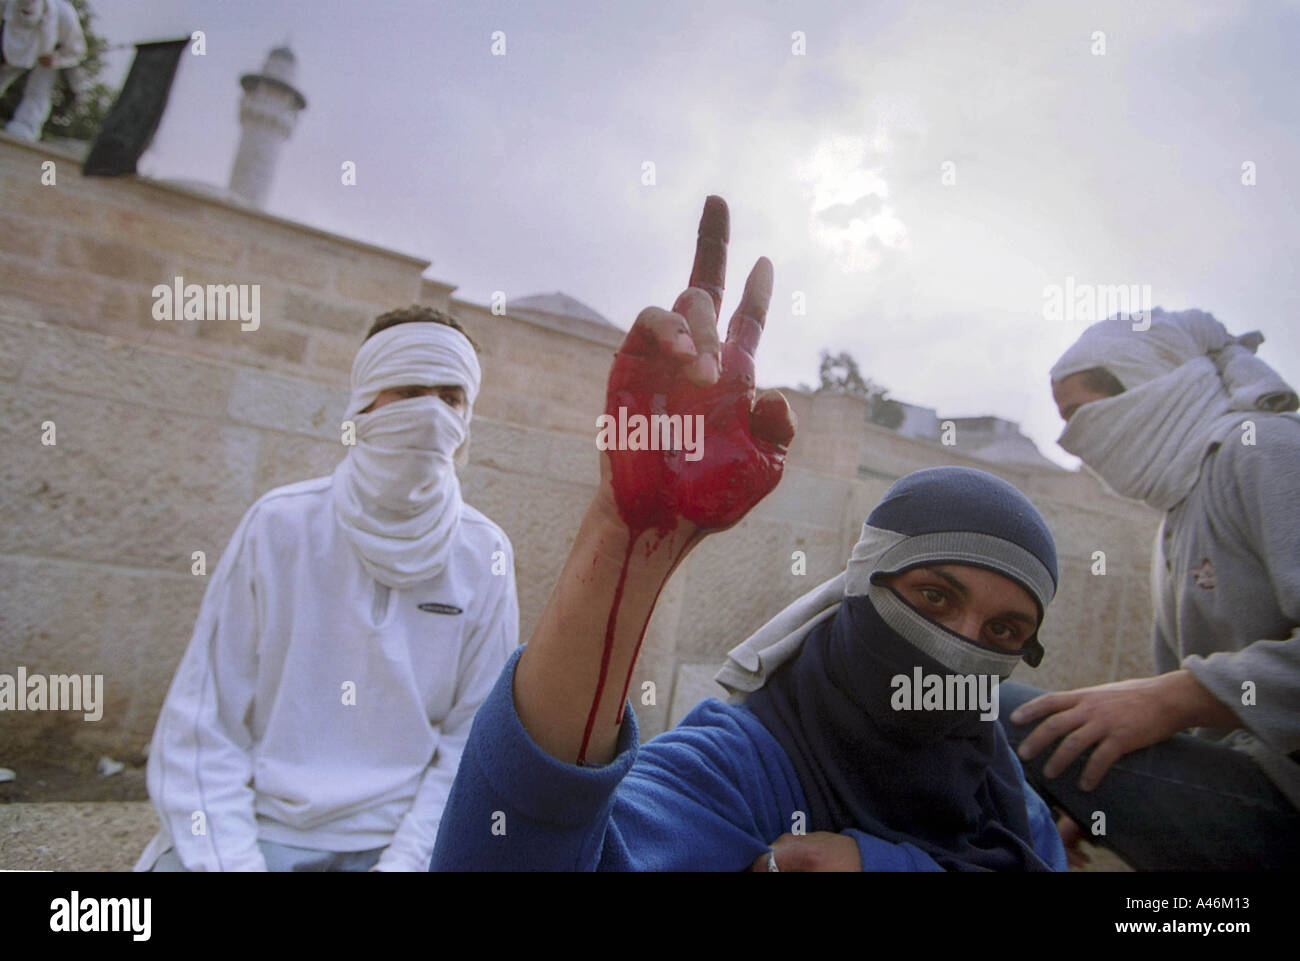 al aqsa mosque clash a palestinian demonstrator dips his hand in the blood of amar mehnies a 16 year old boy killed by the israeli army during a clash in the courtyard of the al aqsa mosque in jerusalem 8th december 2000 on the 13th anniversary of the first intifada - Stock Image